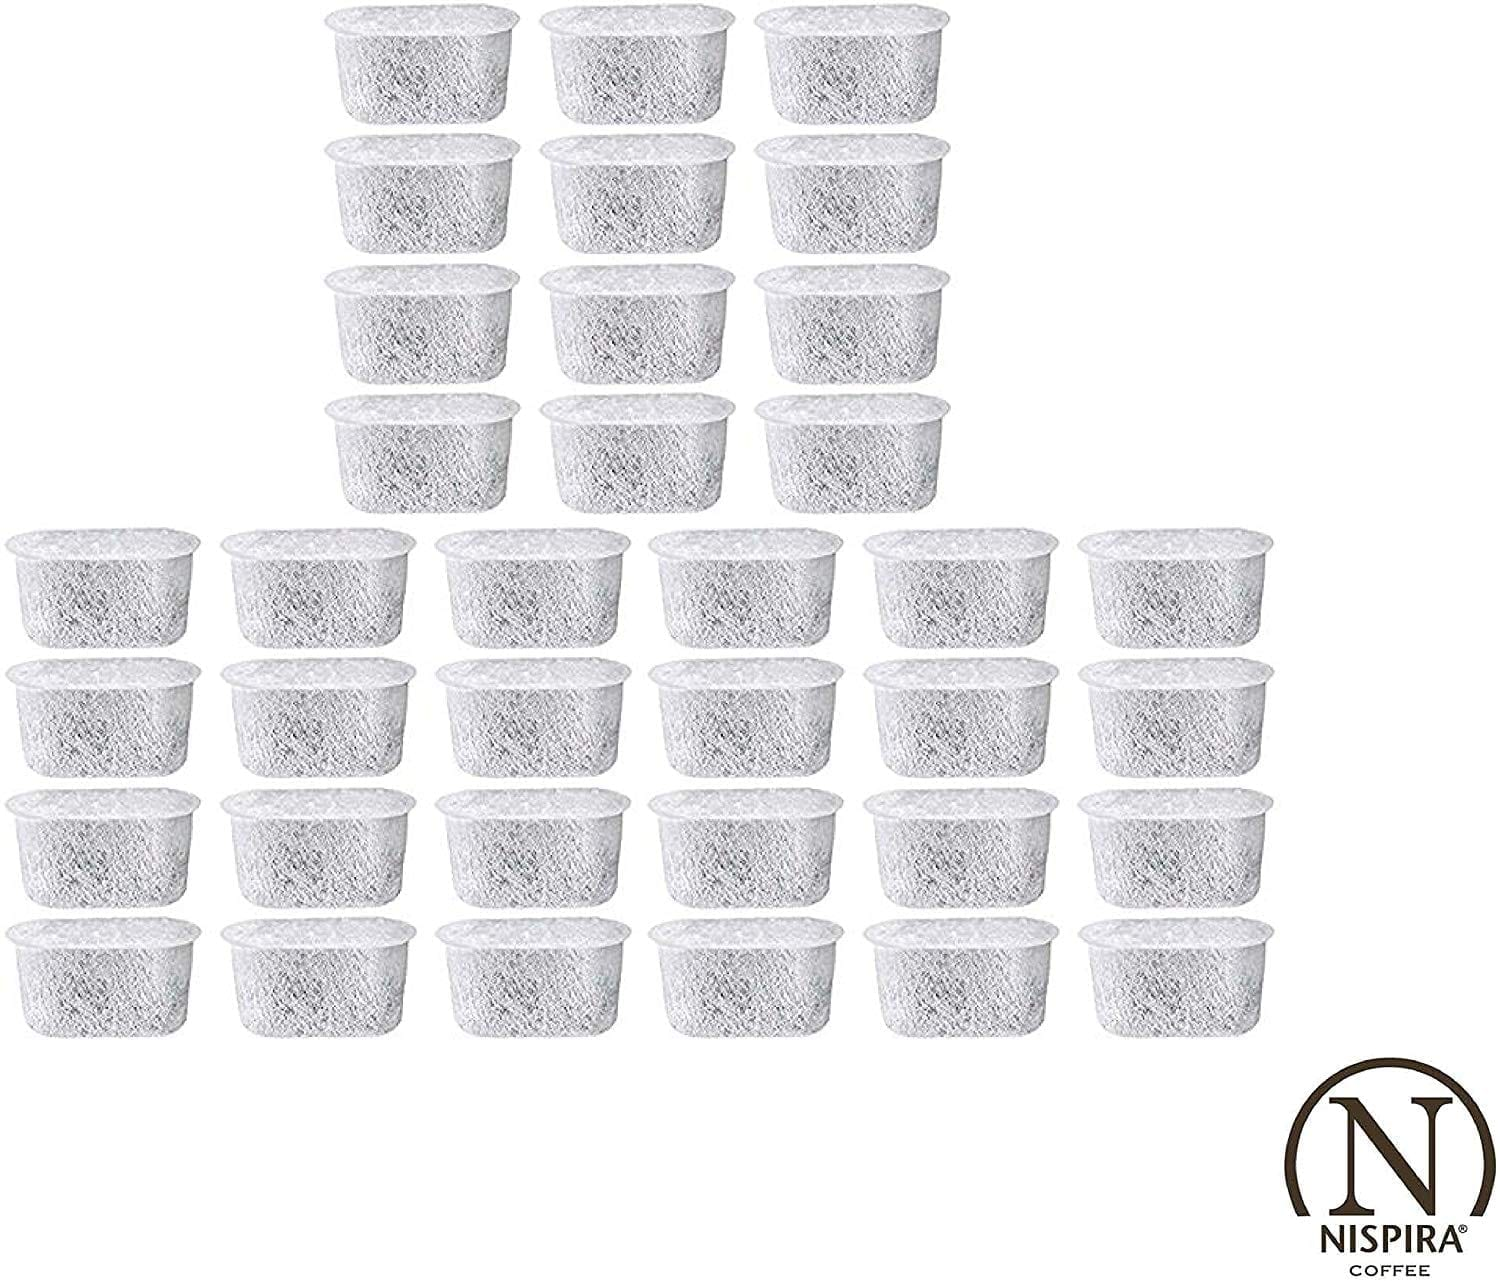 36 Nispira Activated Charcoal Water Filters Replacement